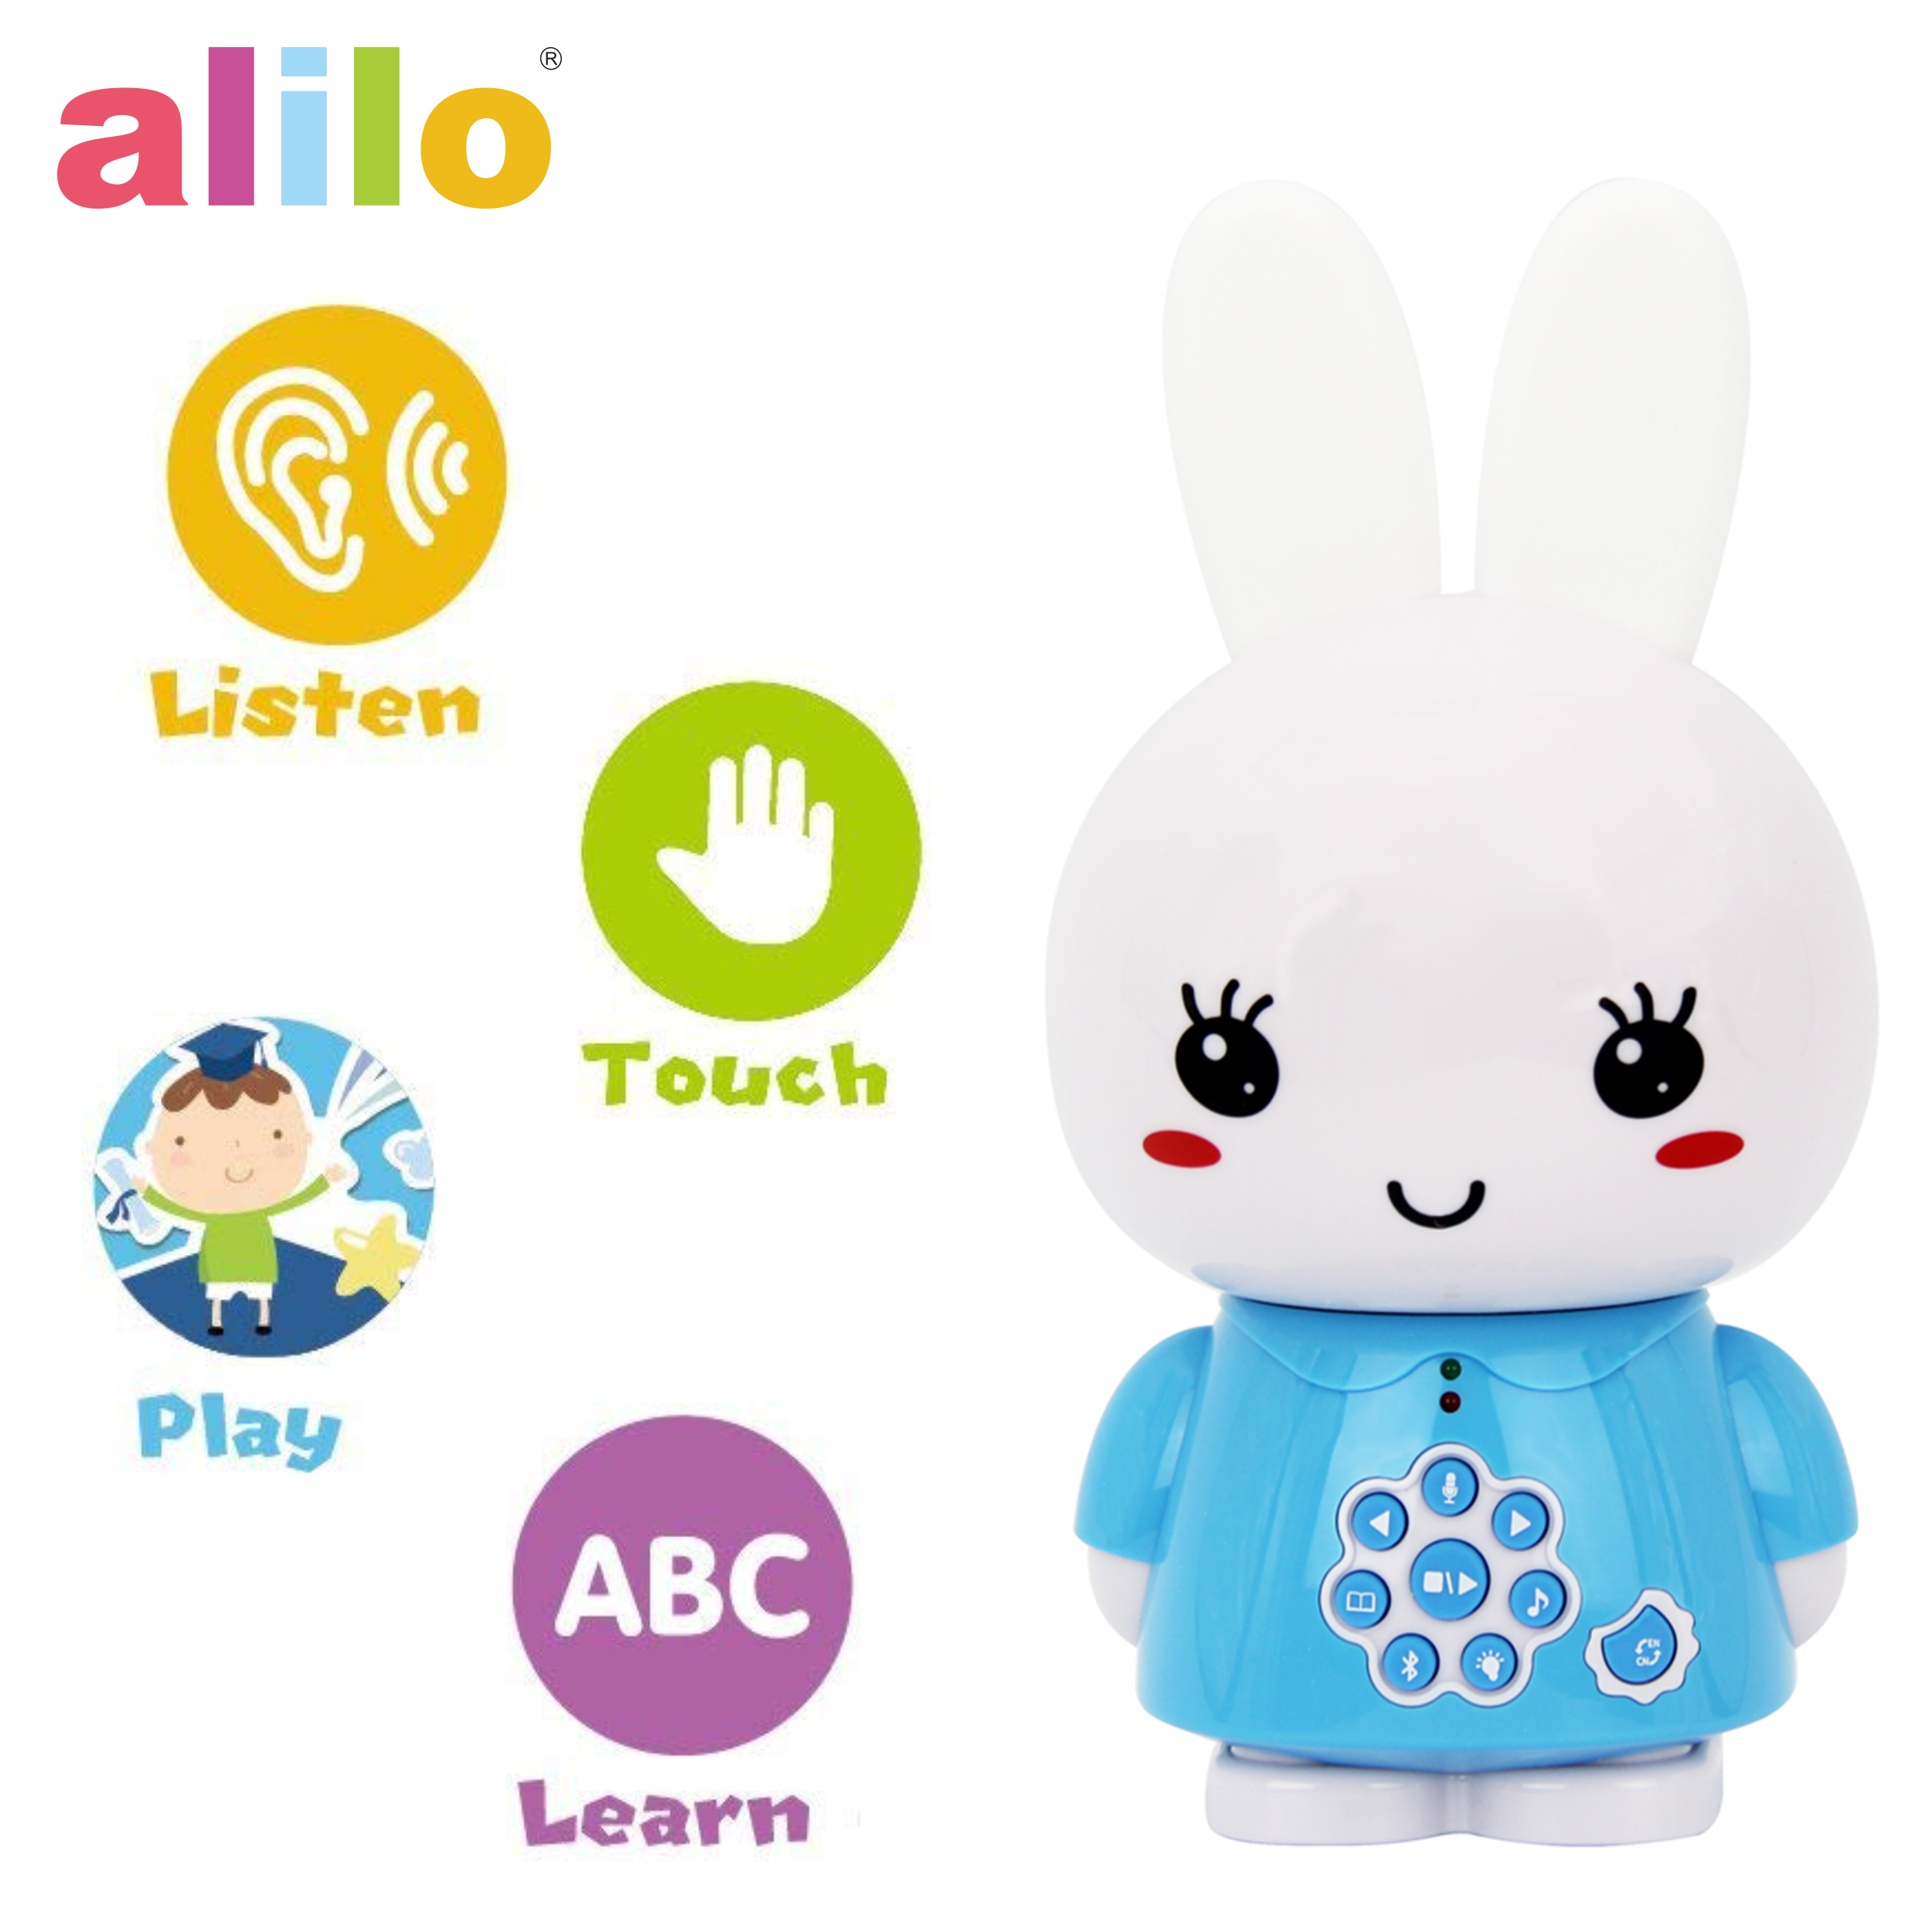 alilo Honey Bunny Story Teller Nursery Rhyme Lullaby Song Bedtime Story Fairy-tale Interactive Children Brain Kid Early Development Learning Toy Training Bluetooth English Chinese Bilingual G6X - Blue